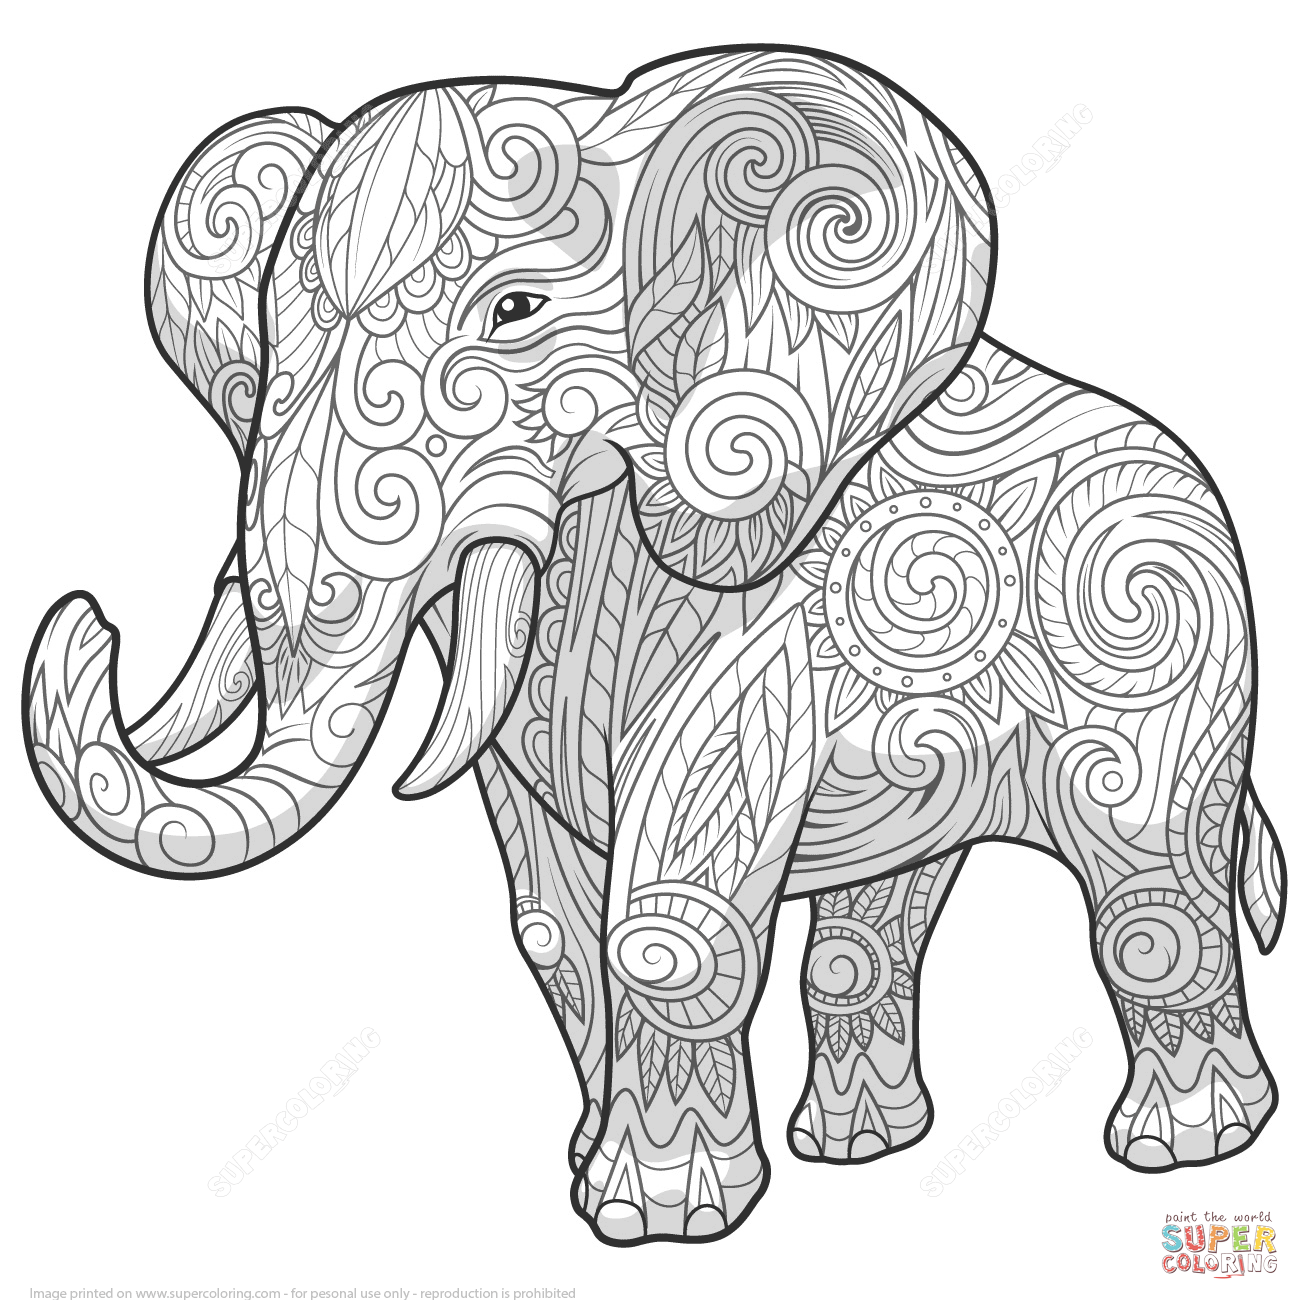 Zentangle de Elefante Étnico | Super Coloring Más | bordado ...